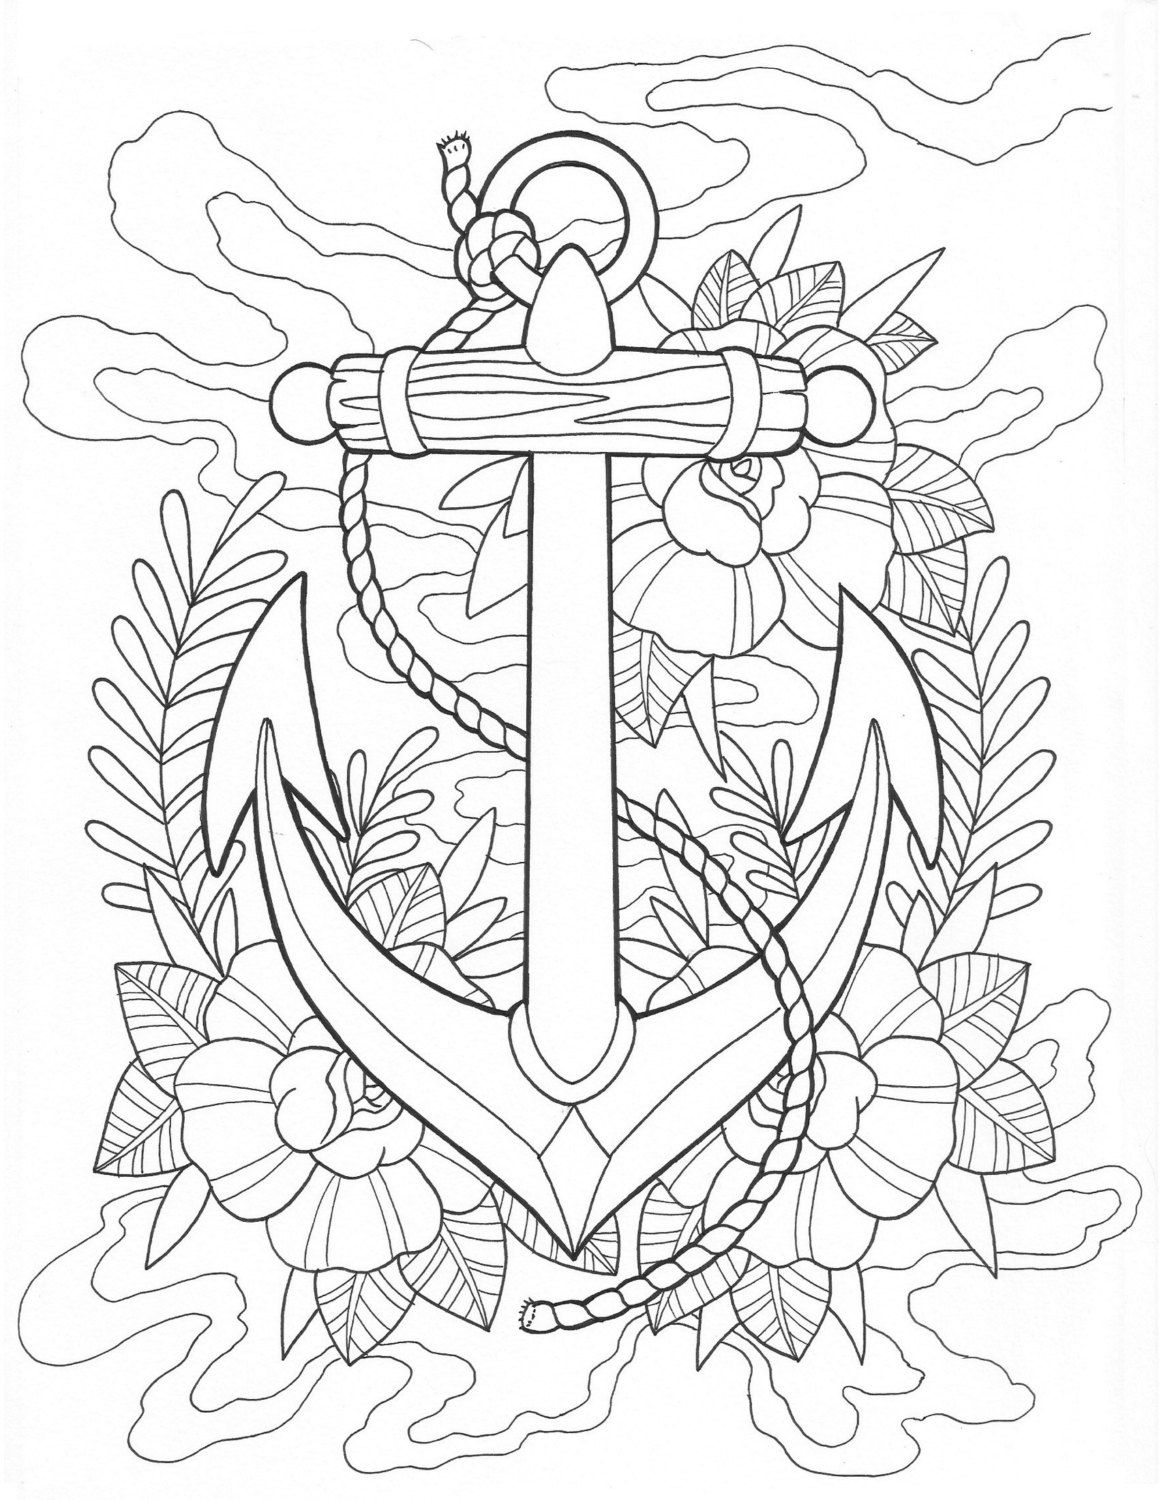 Tattoo Coloring Pages Set. Adult coloring Book by